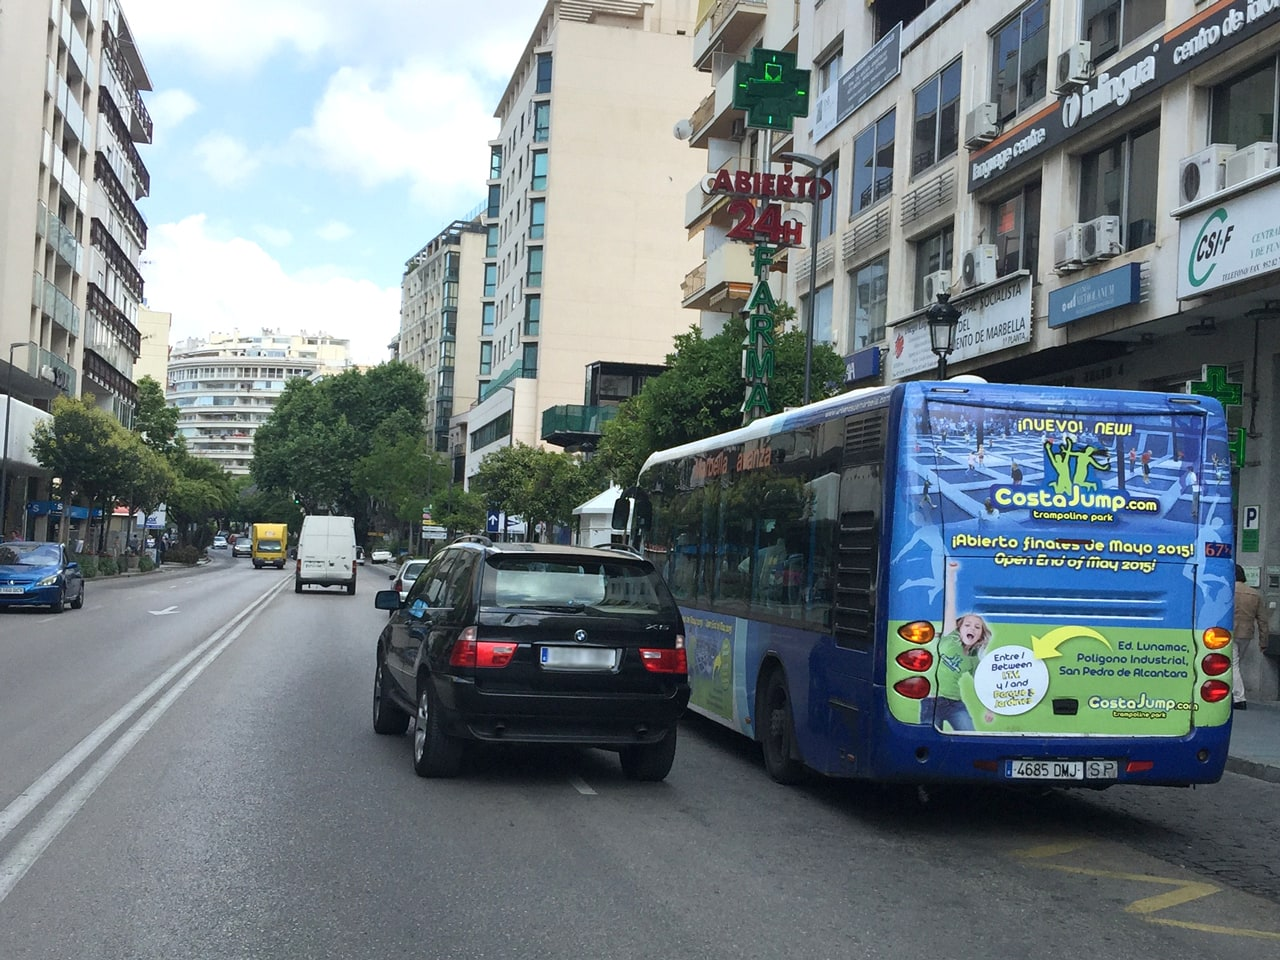 Outdoor advertising campaign in Marbella buses for Costa Jump